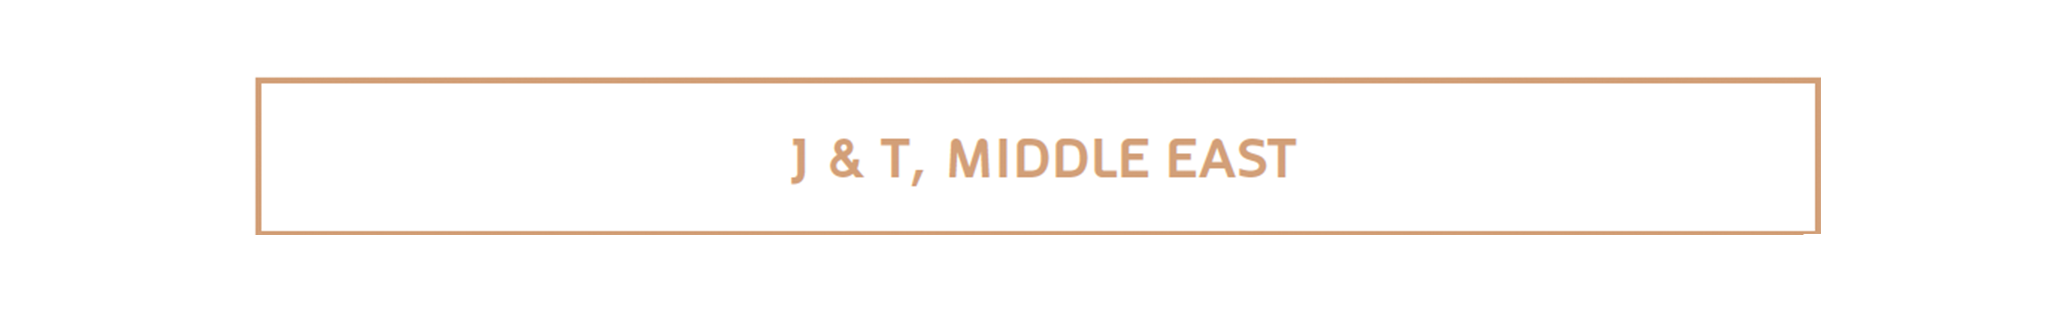 J&T middle east.png